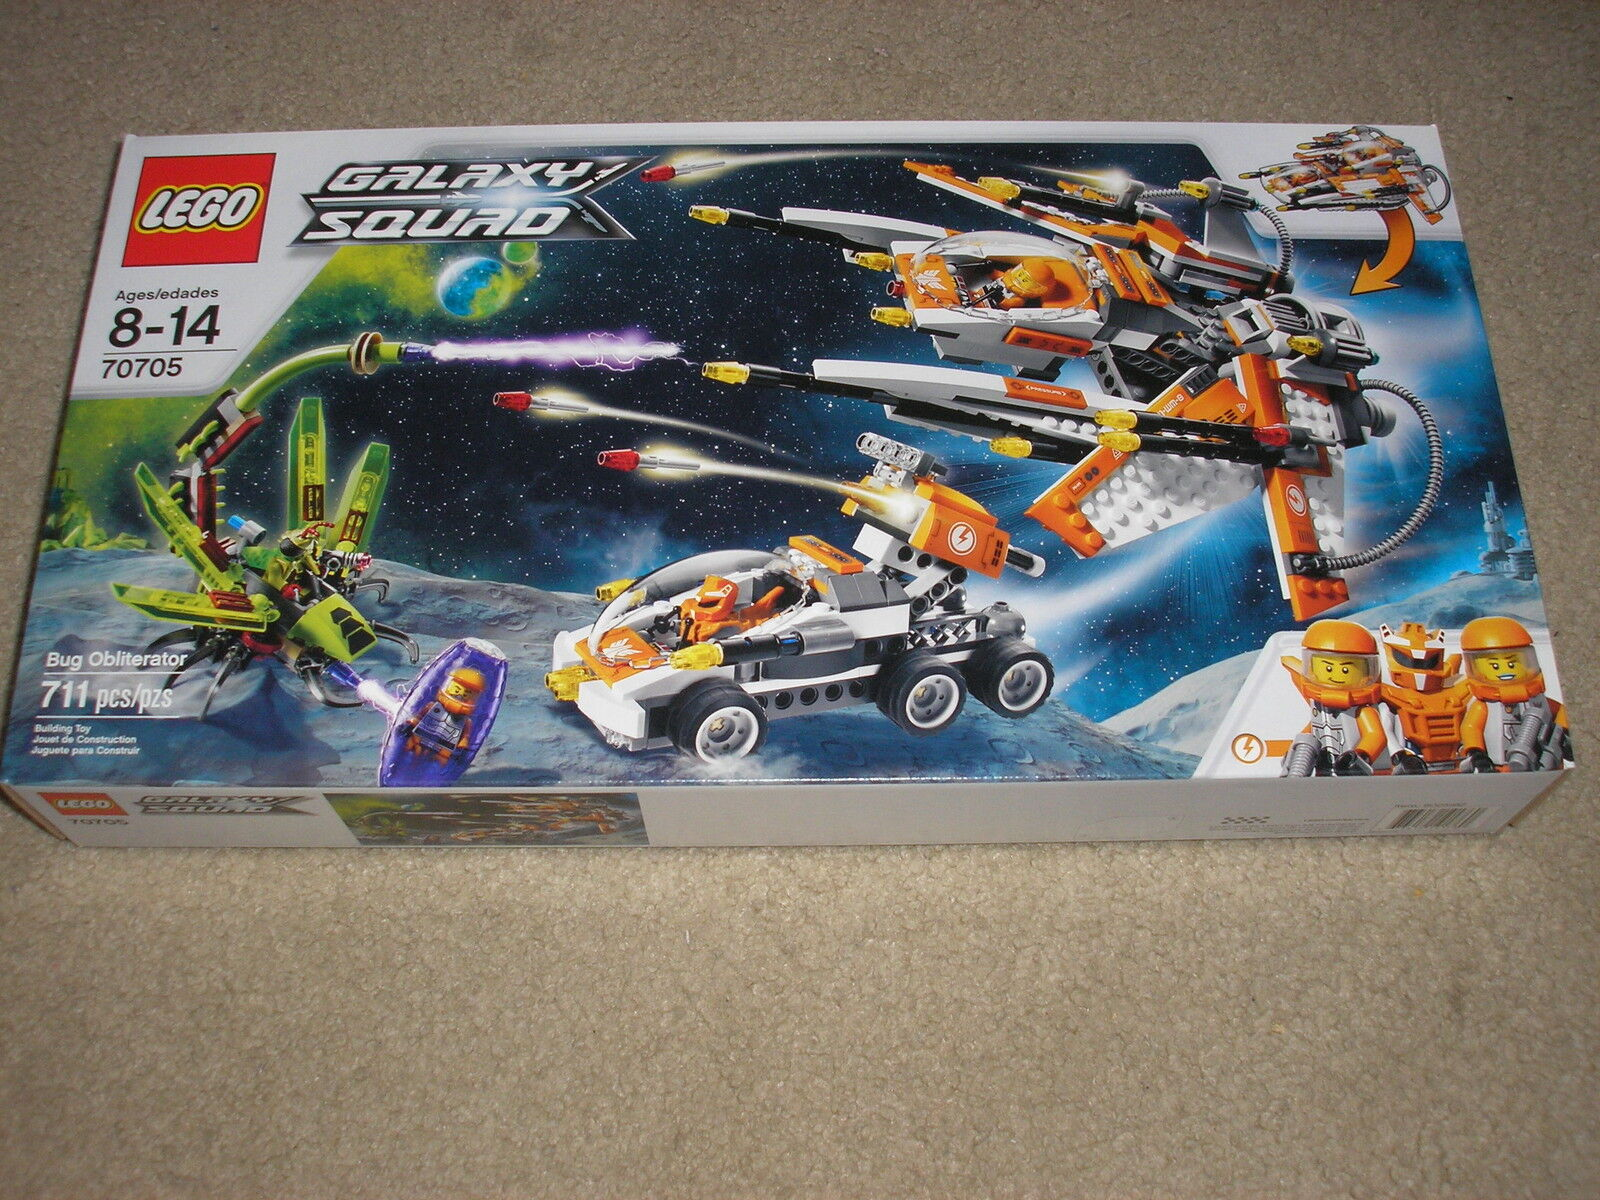 New Factory Sealed Lego 70705 Building Toy Galaxy Squad Bug Obliterator